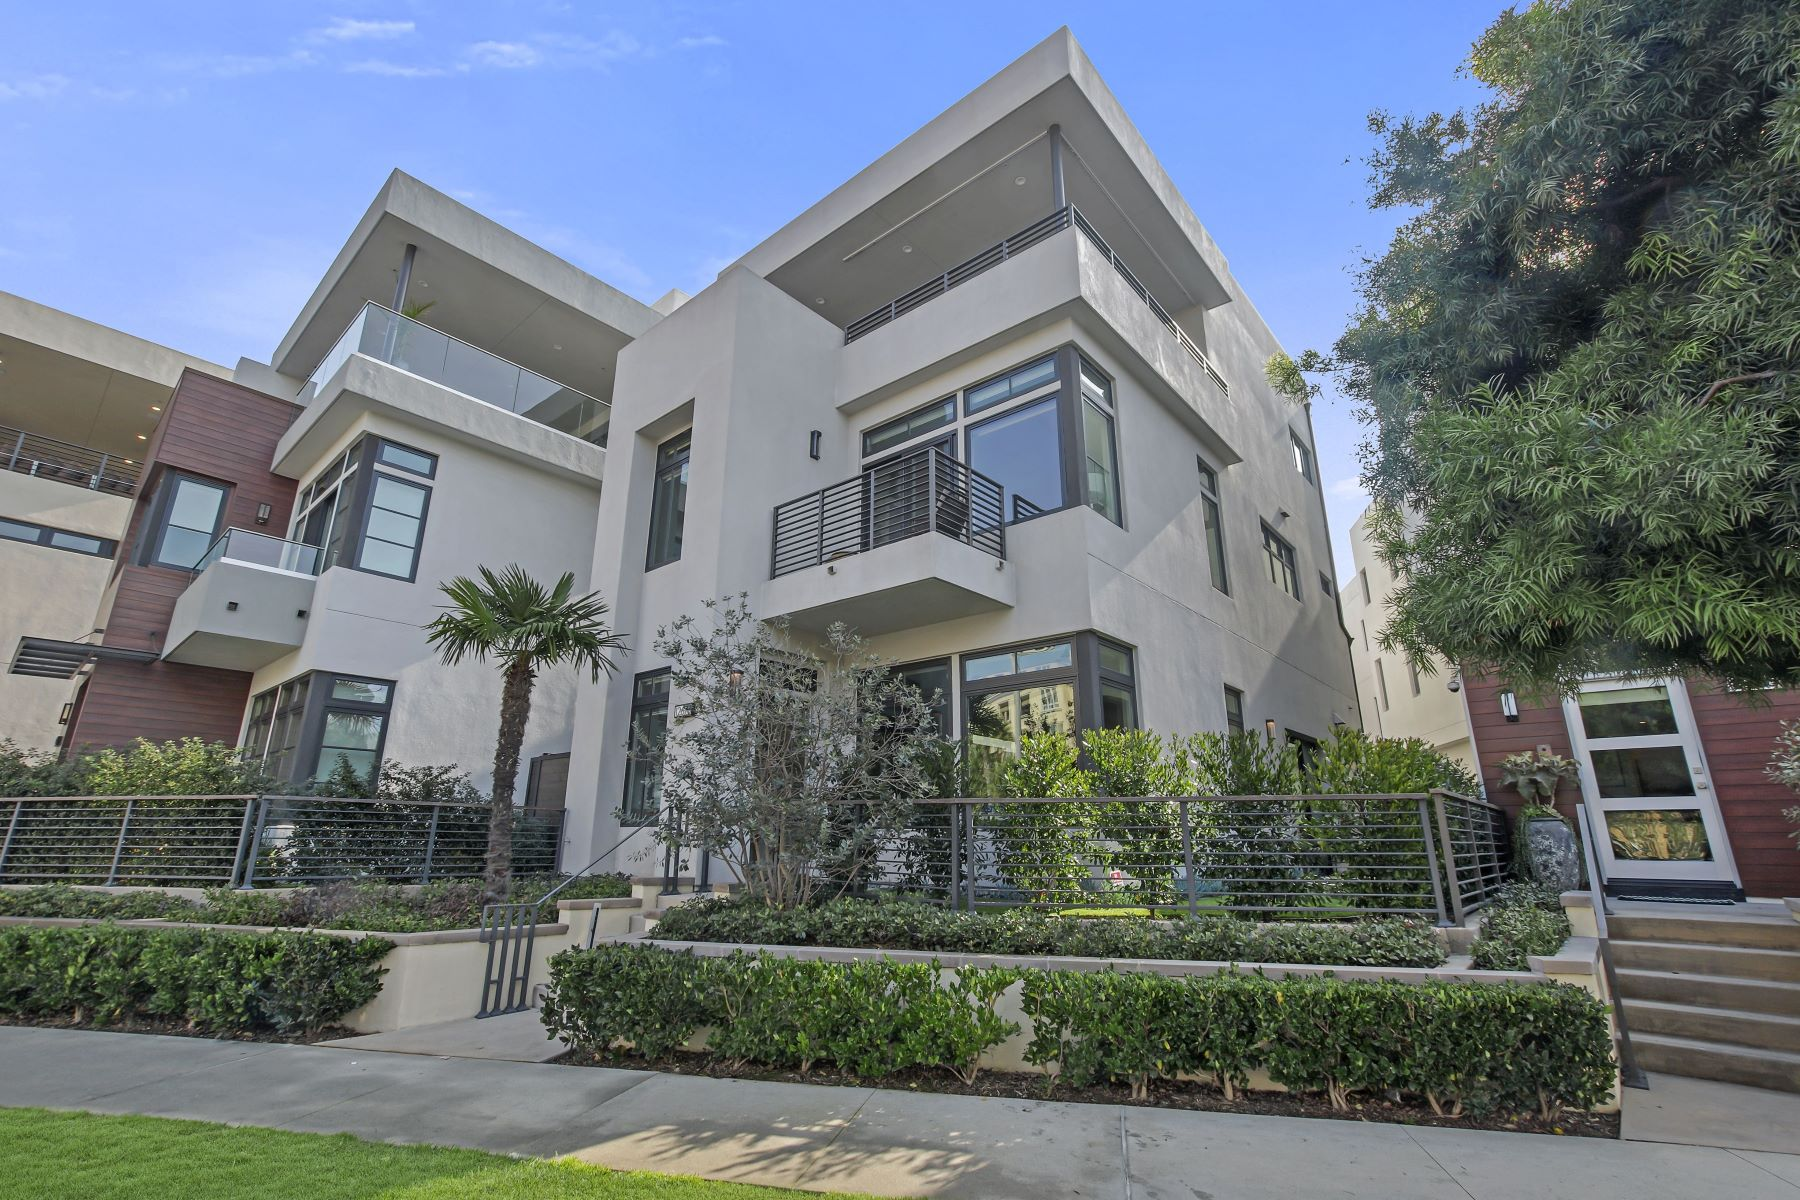 Single Family Homes for Active at 12678 Millennium Drive, Los Angeles, CA 90094 12678 Millennium Drive Los Angeles, California 90094 United States